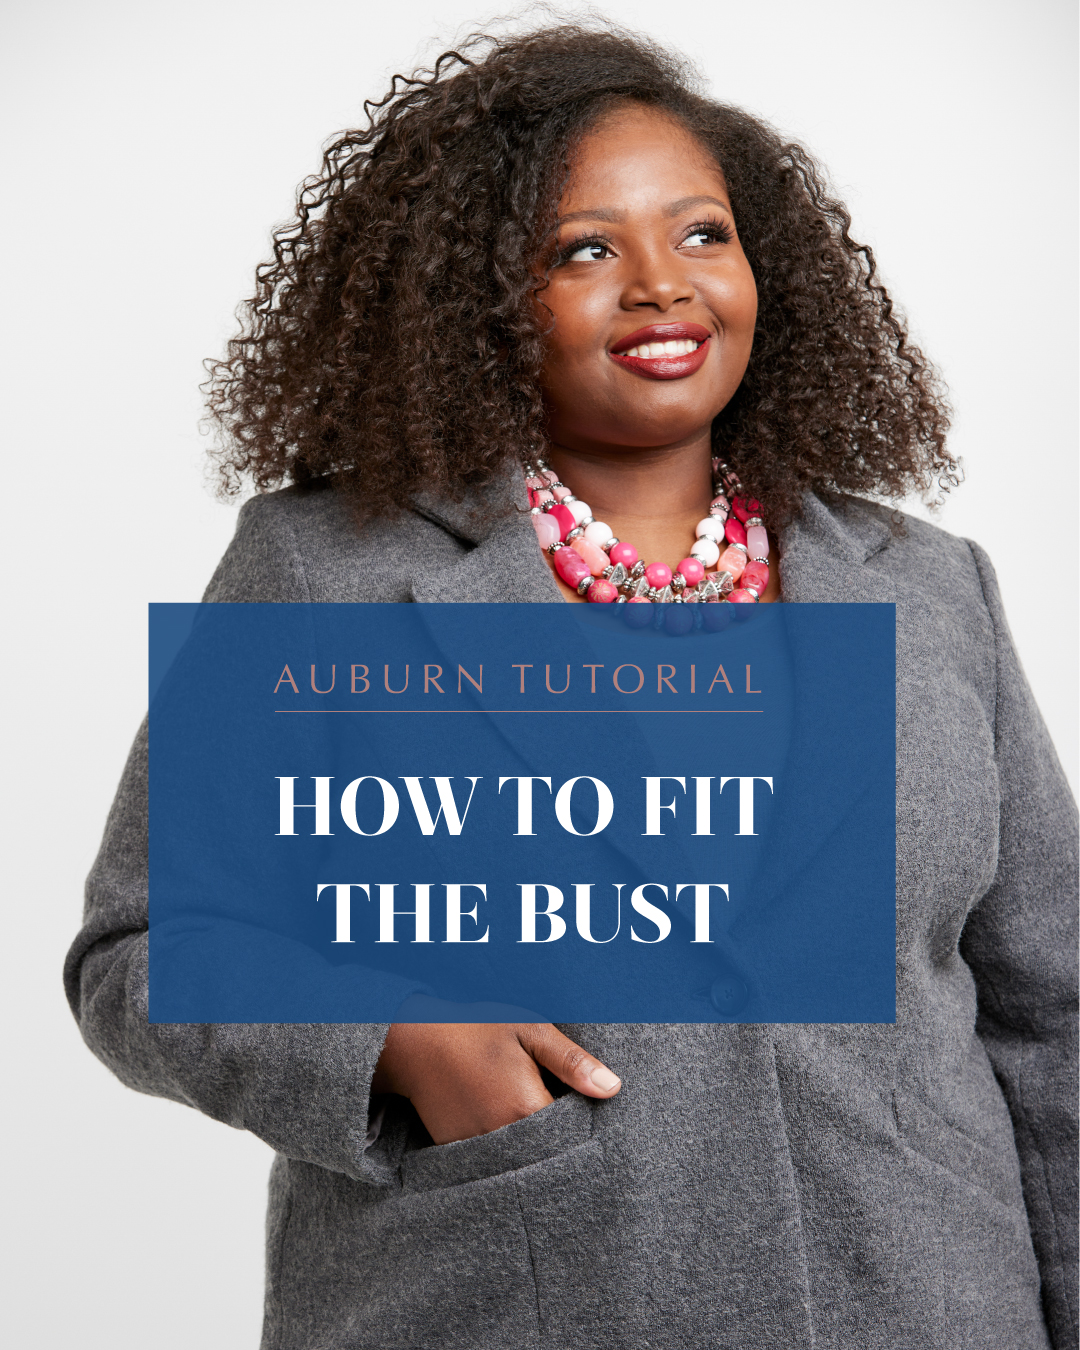 auburn tutorial: how to fit the bust